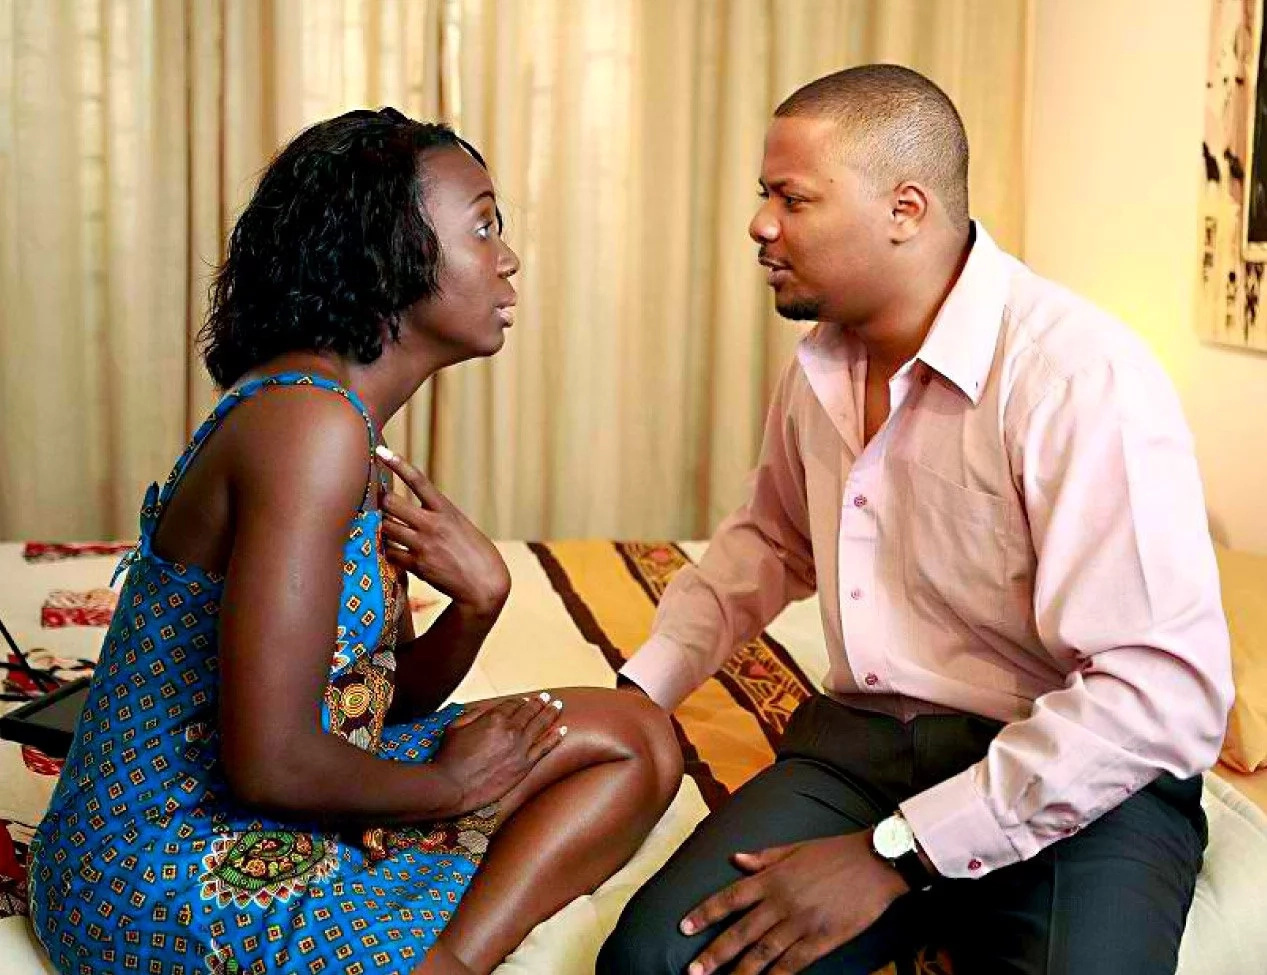 My ex-babydaddy tried to infect me with HIV, his girl saved me